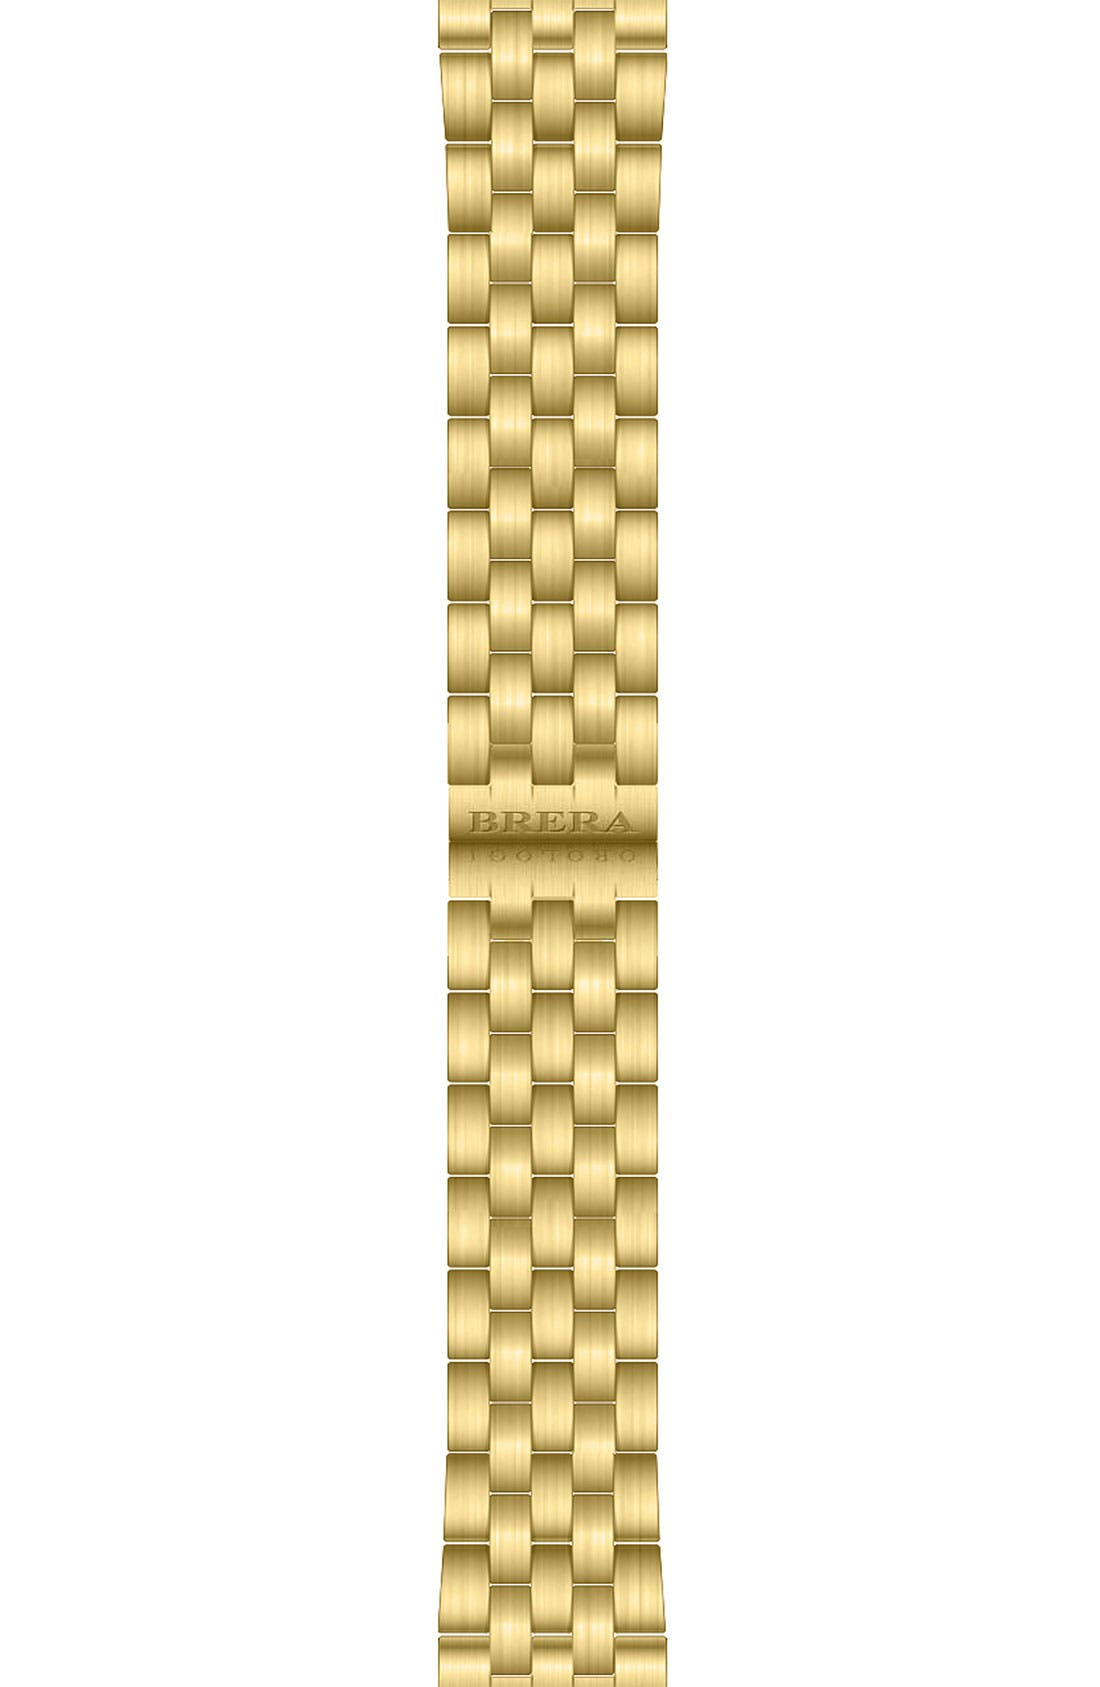 Alternate Image 1 Selected - Brera 'Valentina' 22mm Gold Watch Bracelet